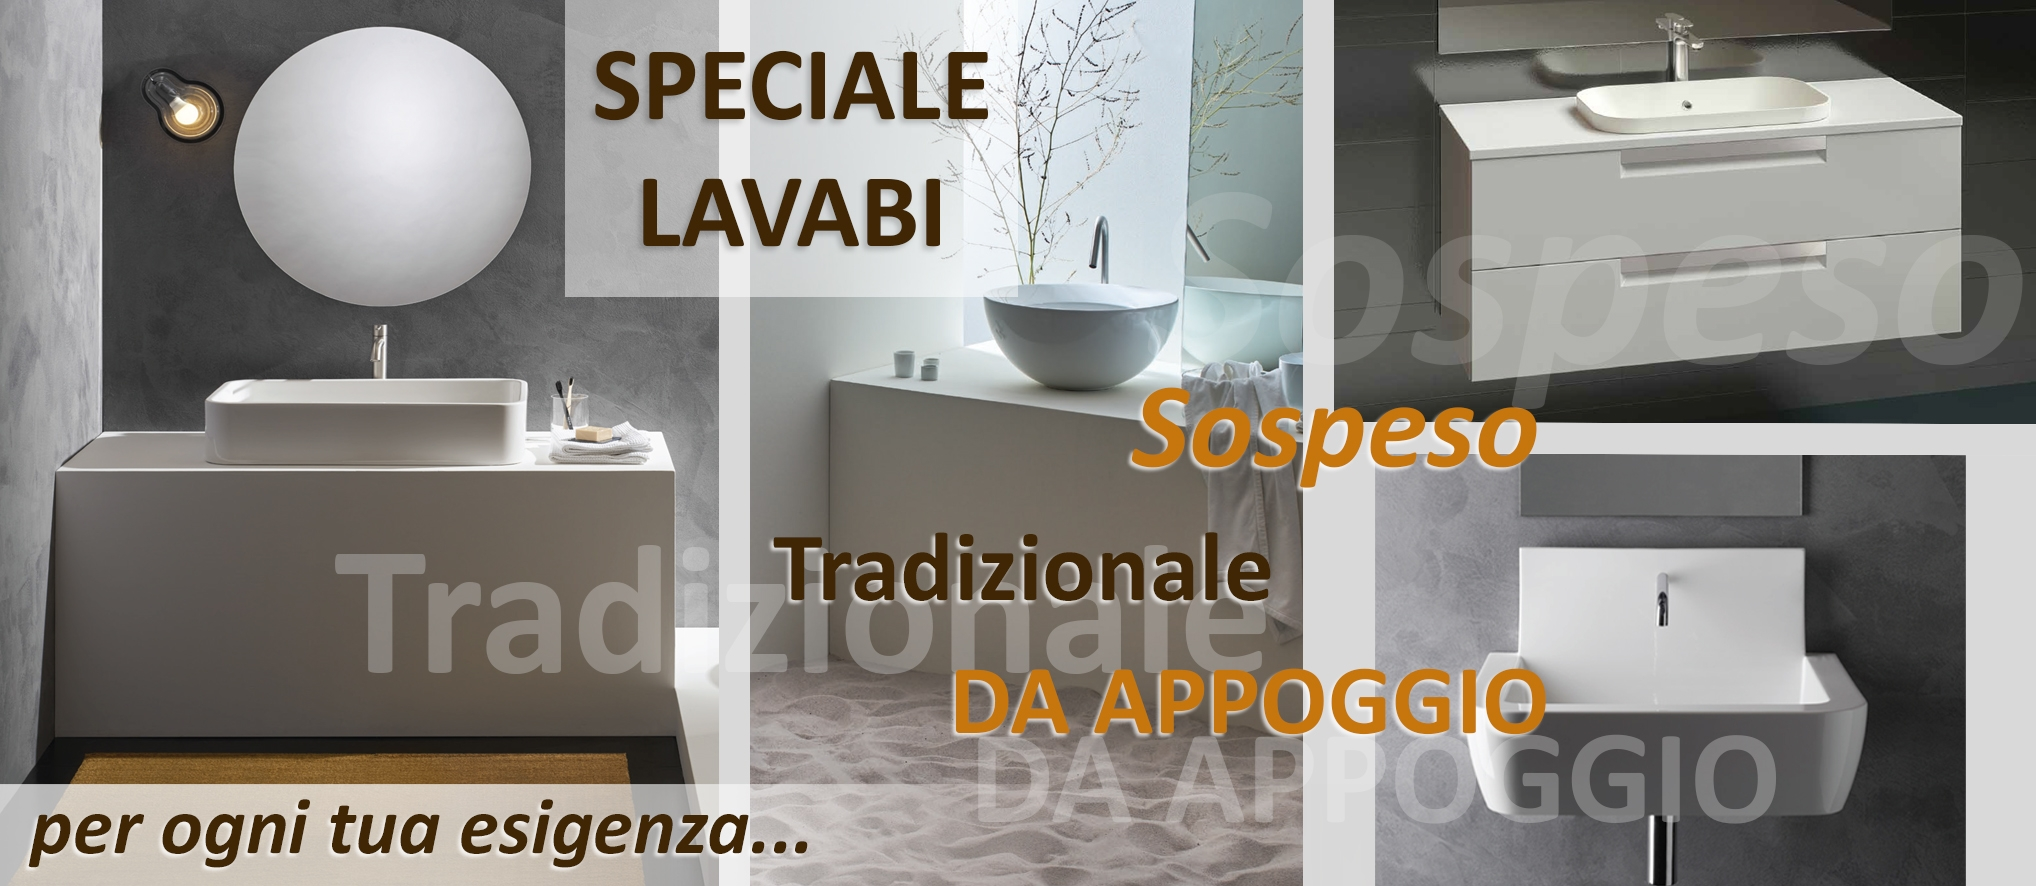 Speciale Lavabo fig06